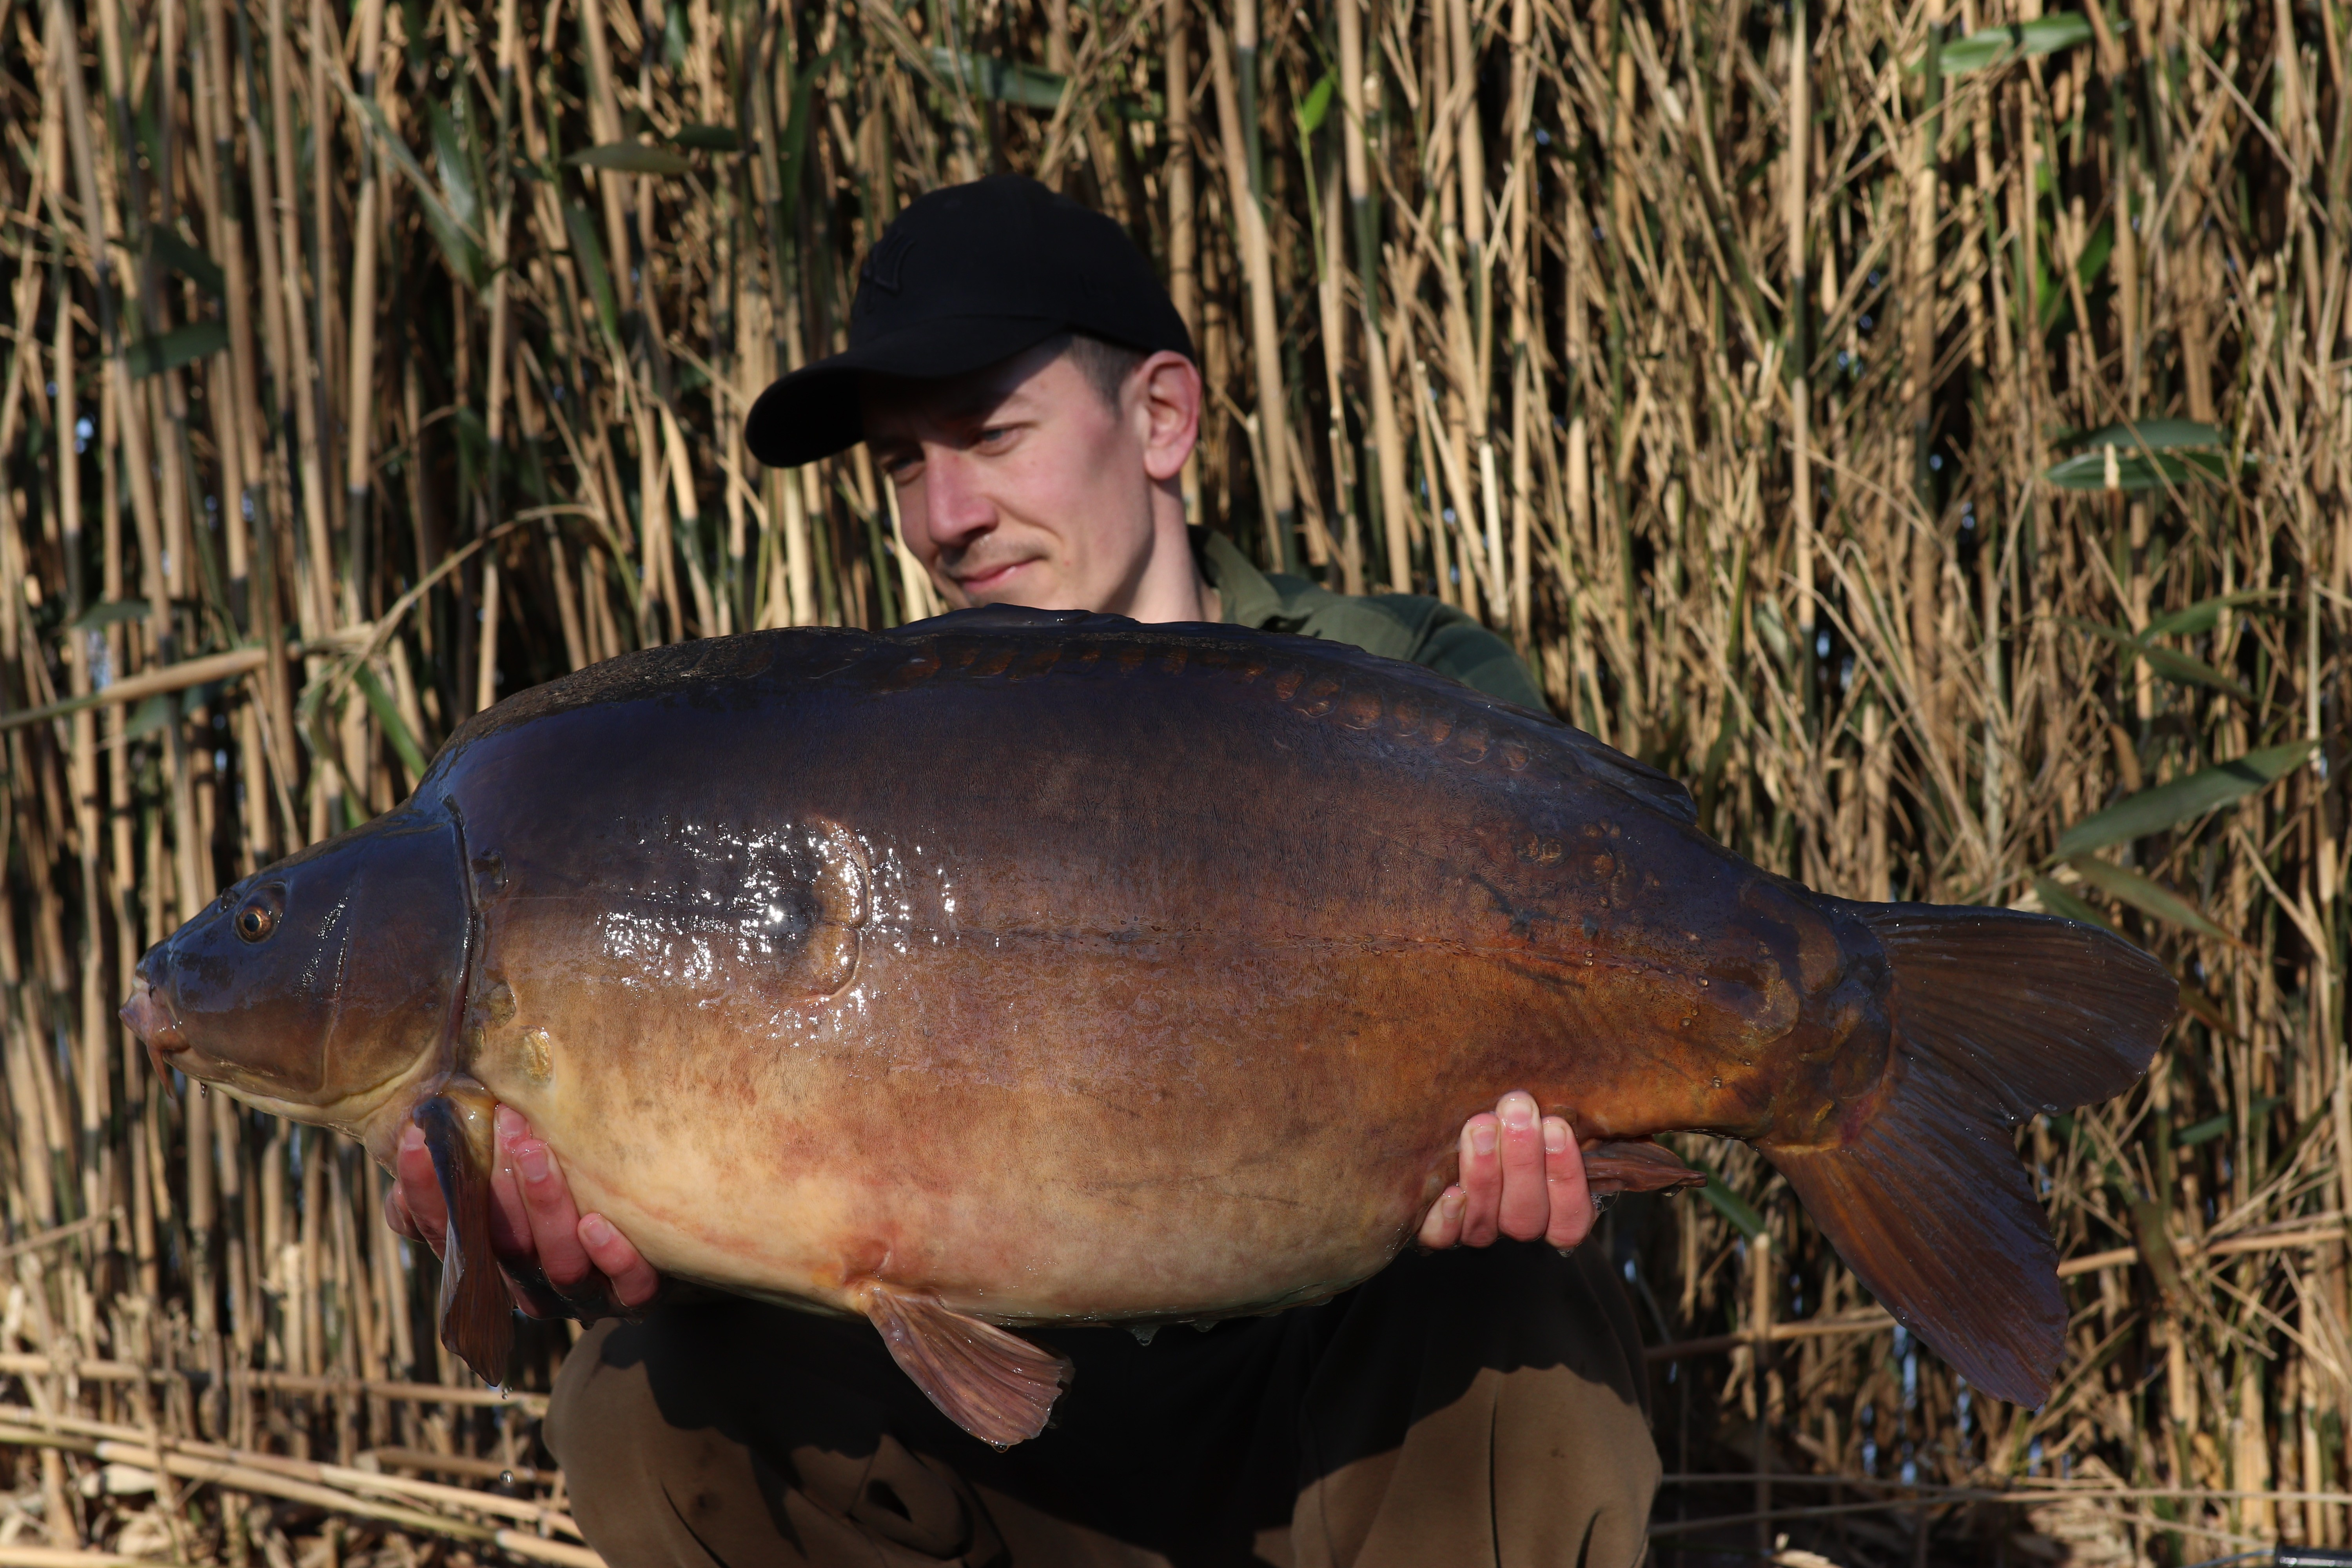 38lb 08oz 'Patch'  caught on